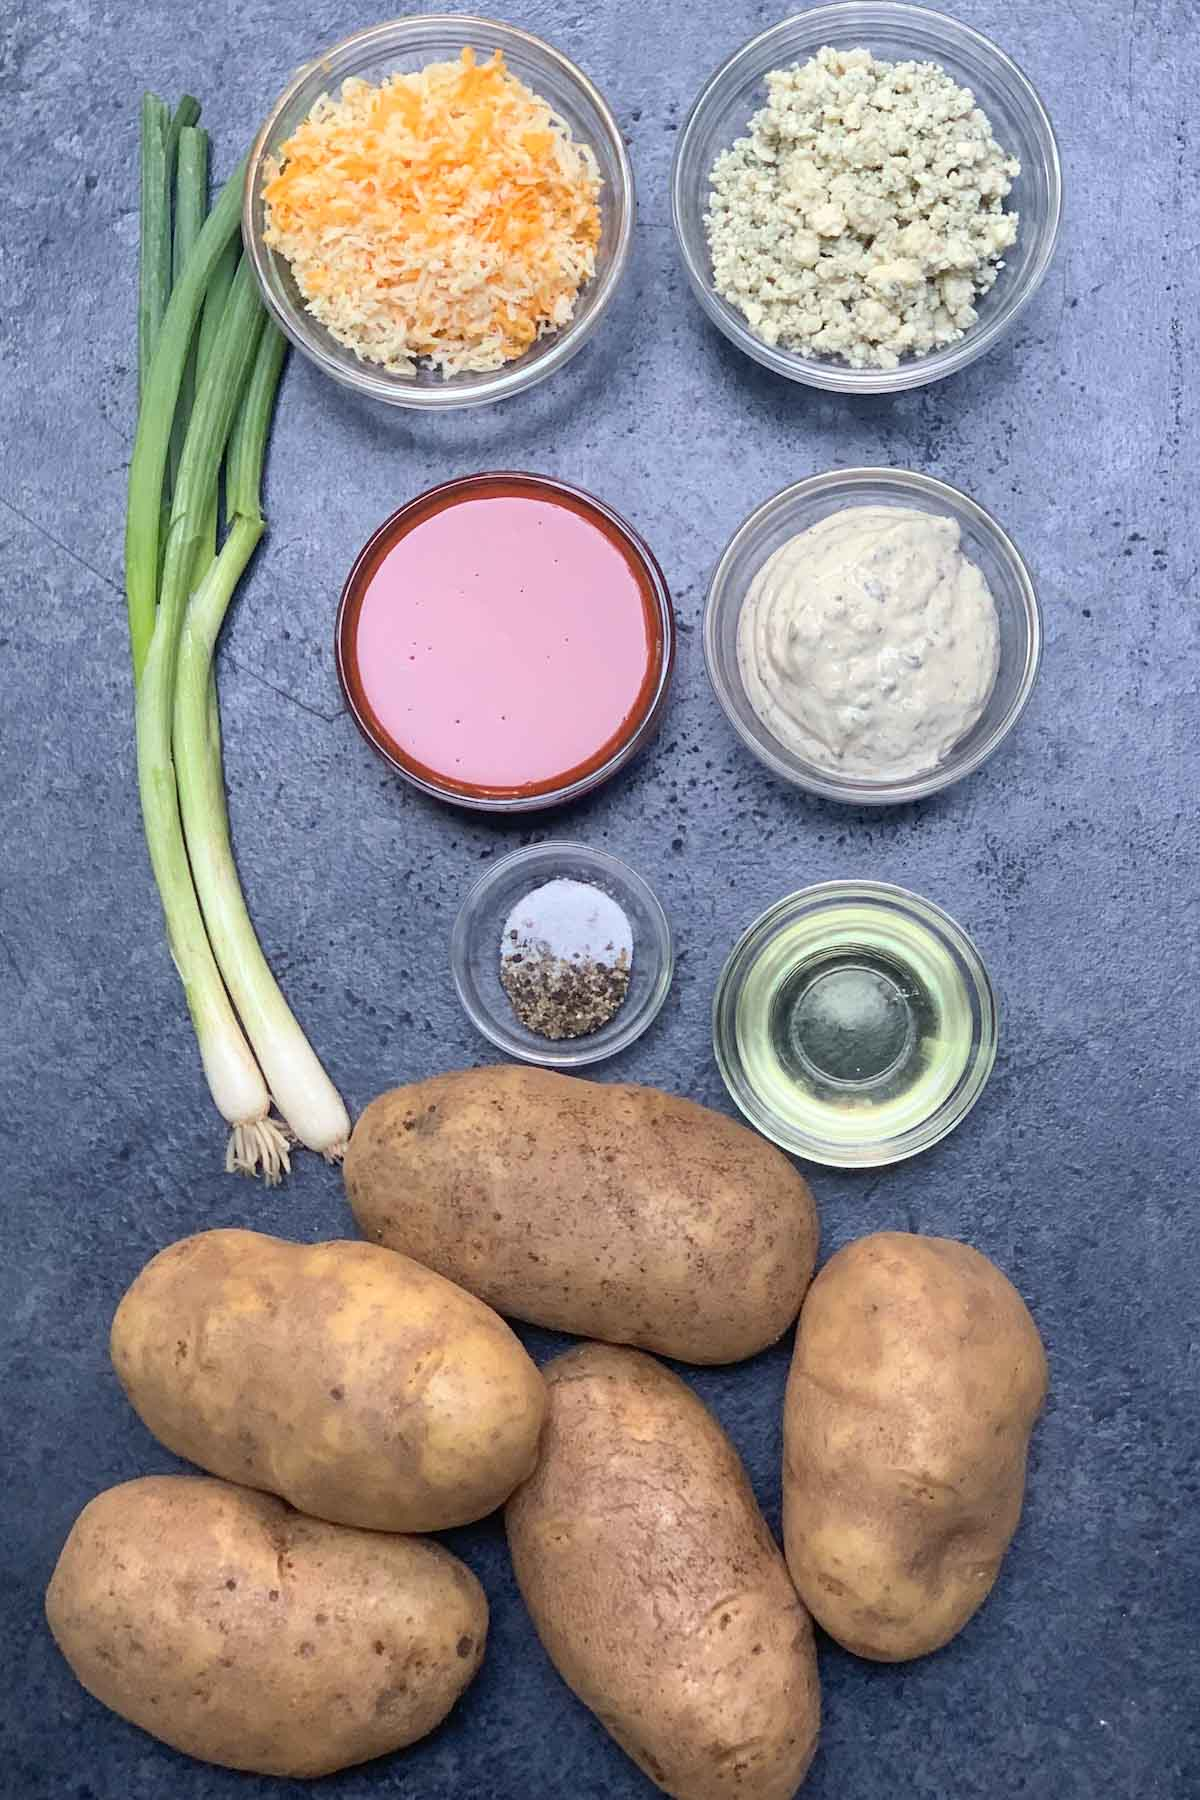 Ingredients for Buffalo Fries